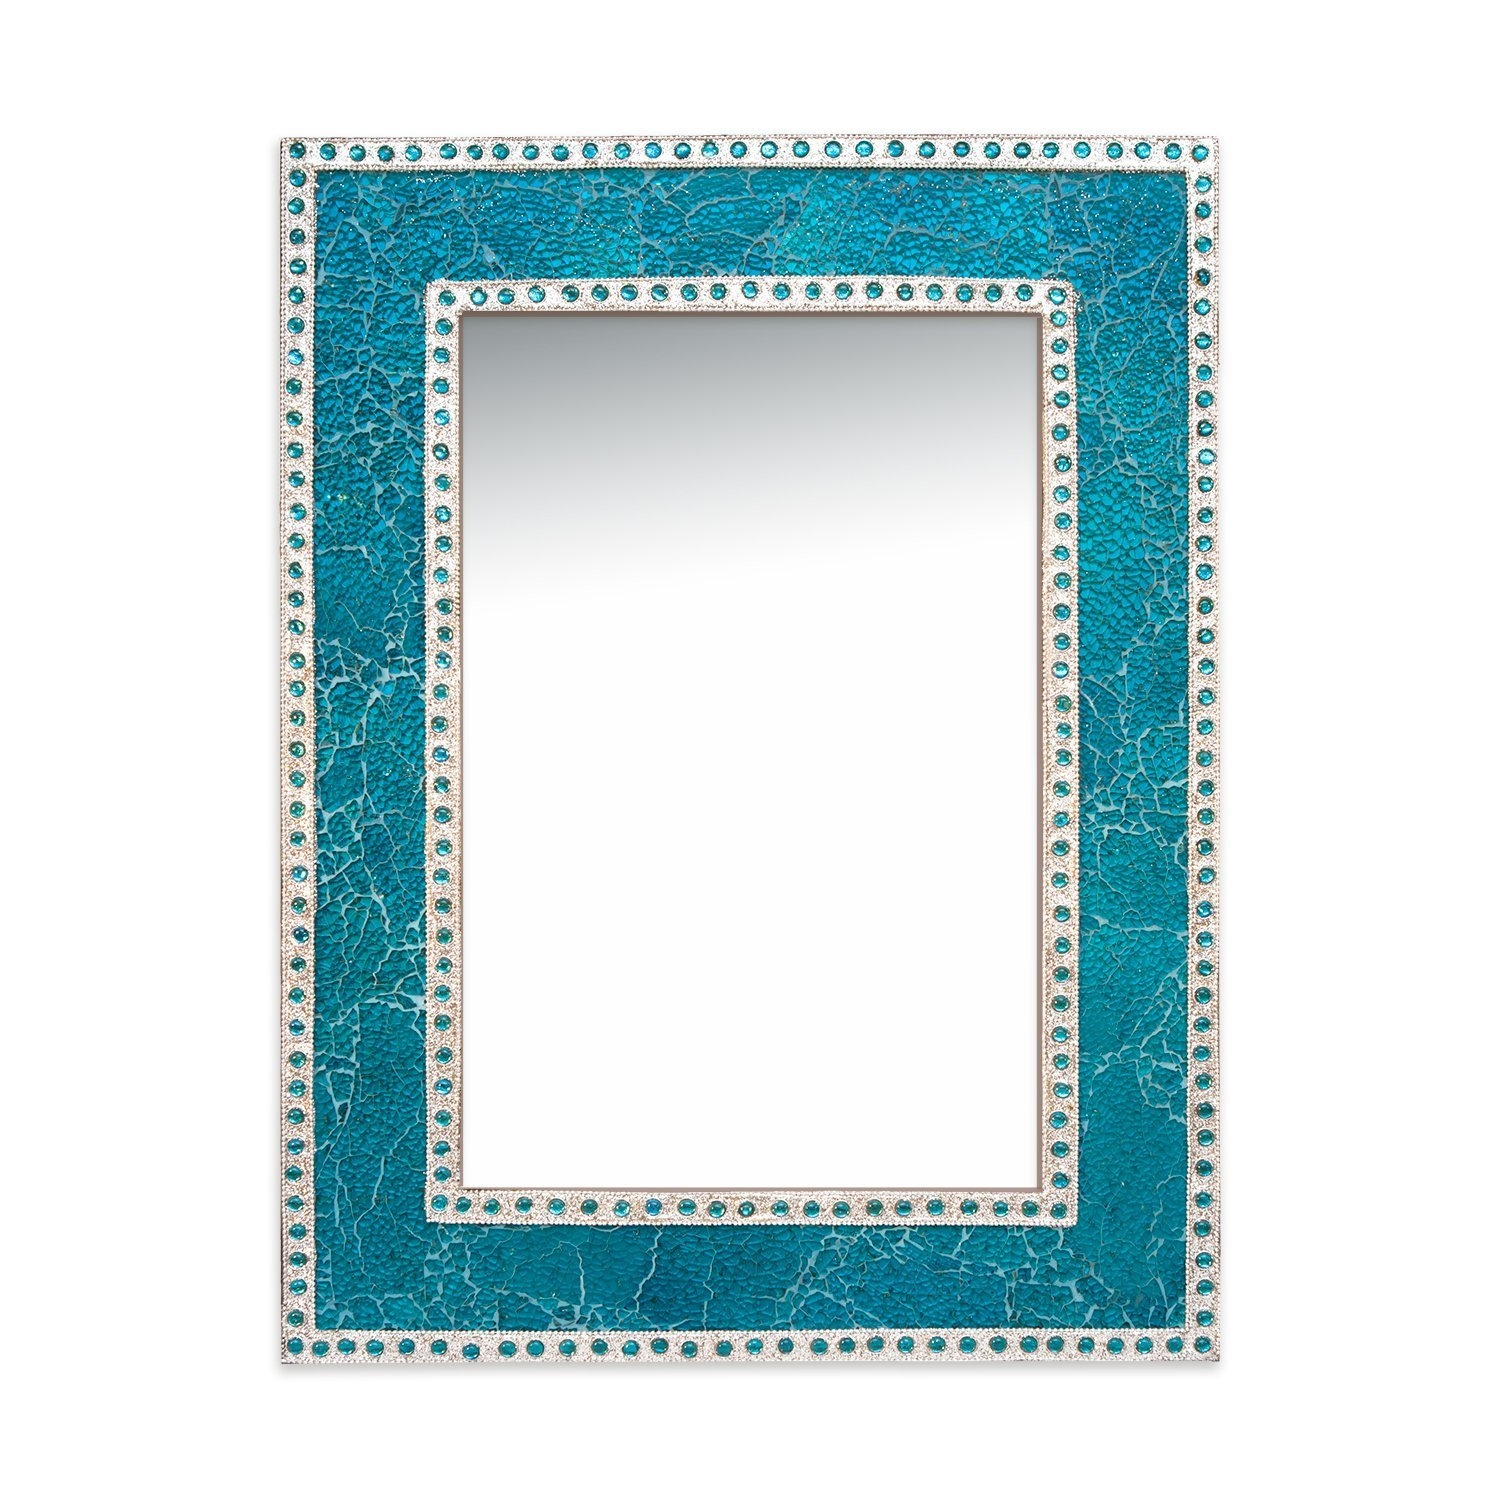 Decorshore Decorative Crackled Glass Mosaic Wall Mirror Reviews Inside Mosaic Wall Mirror (View 2 of 15)